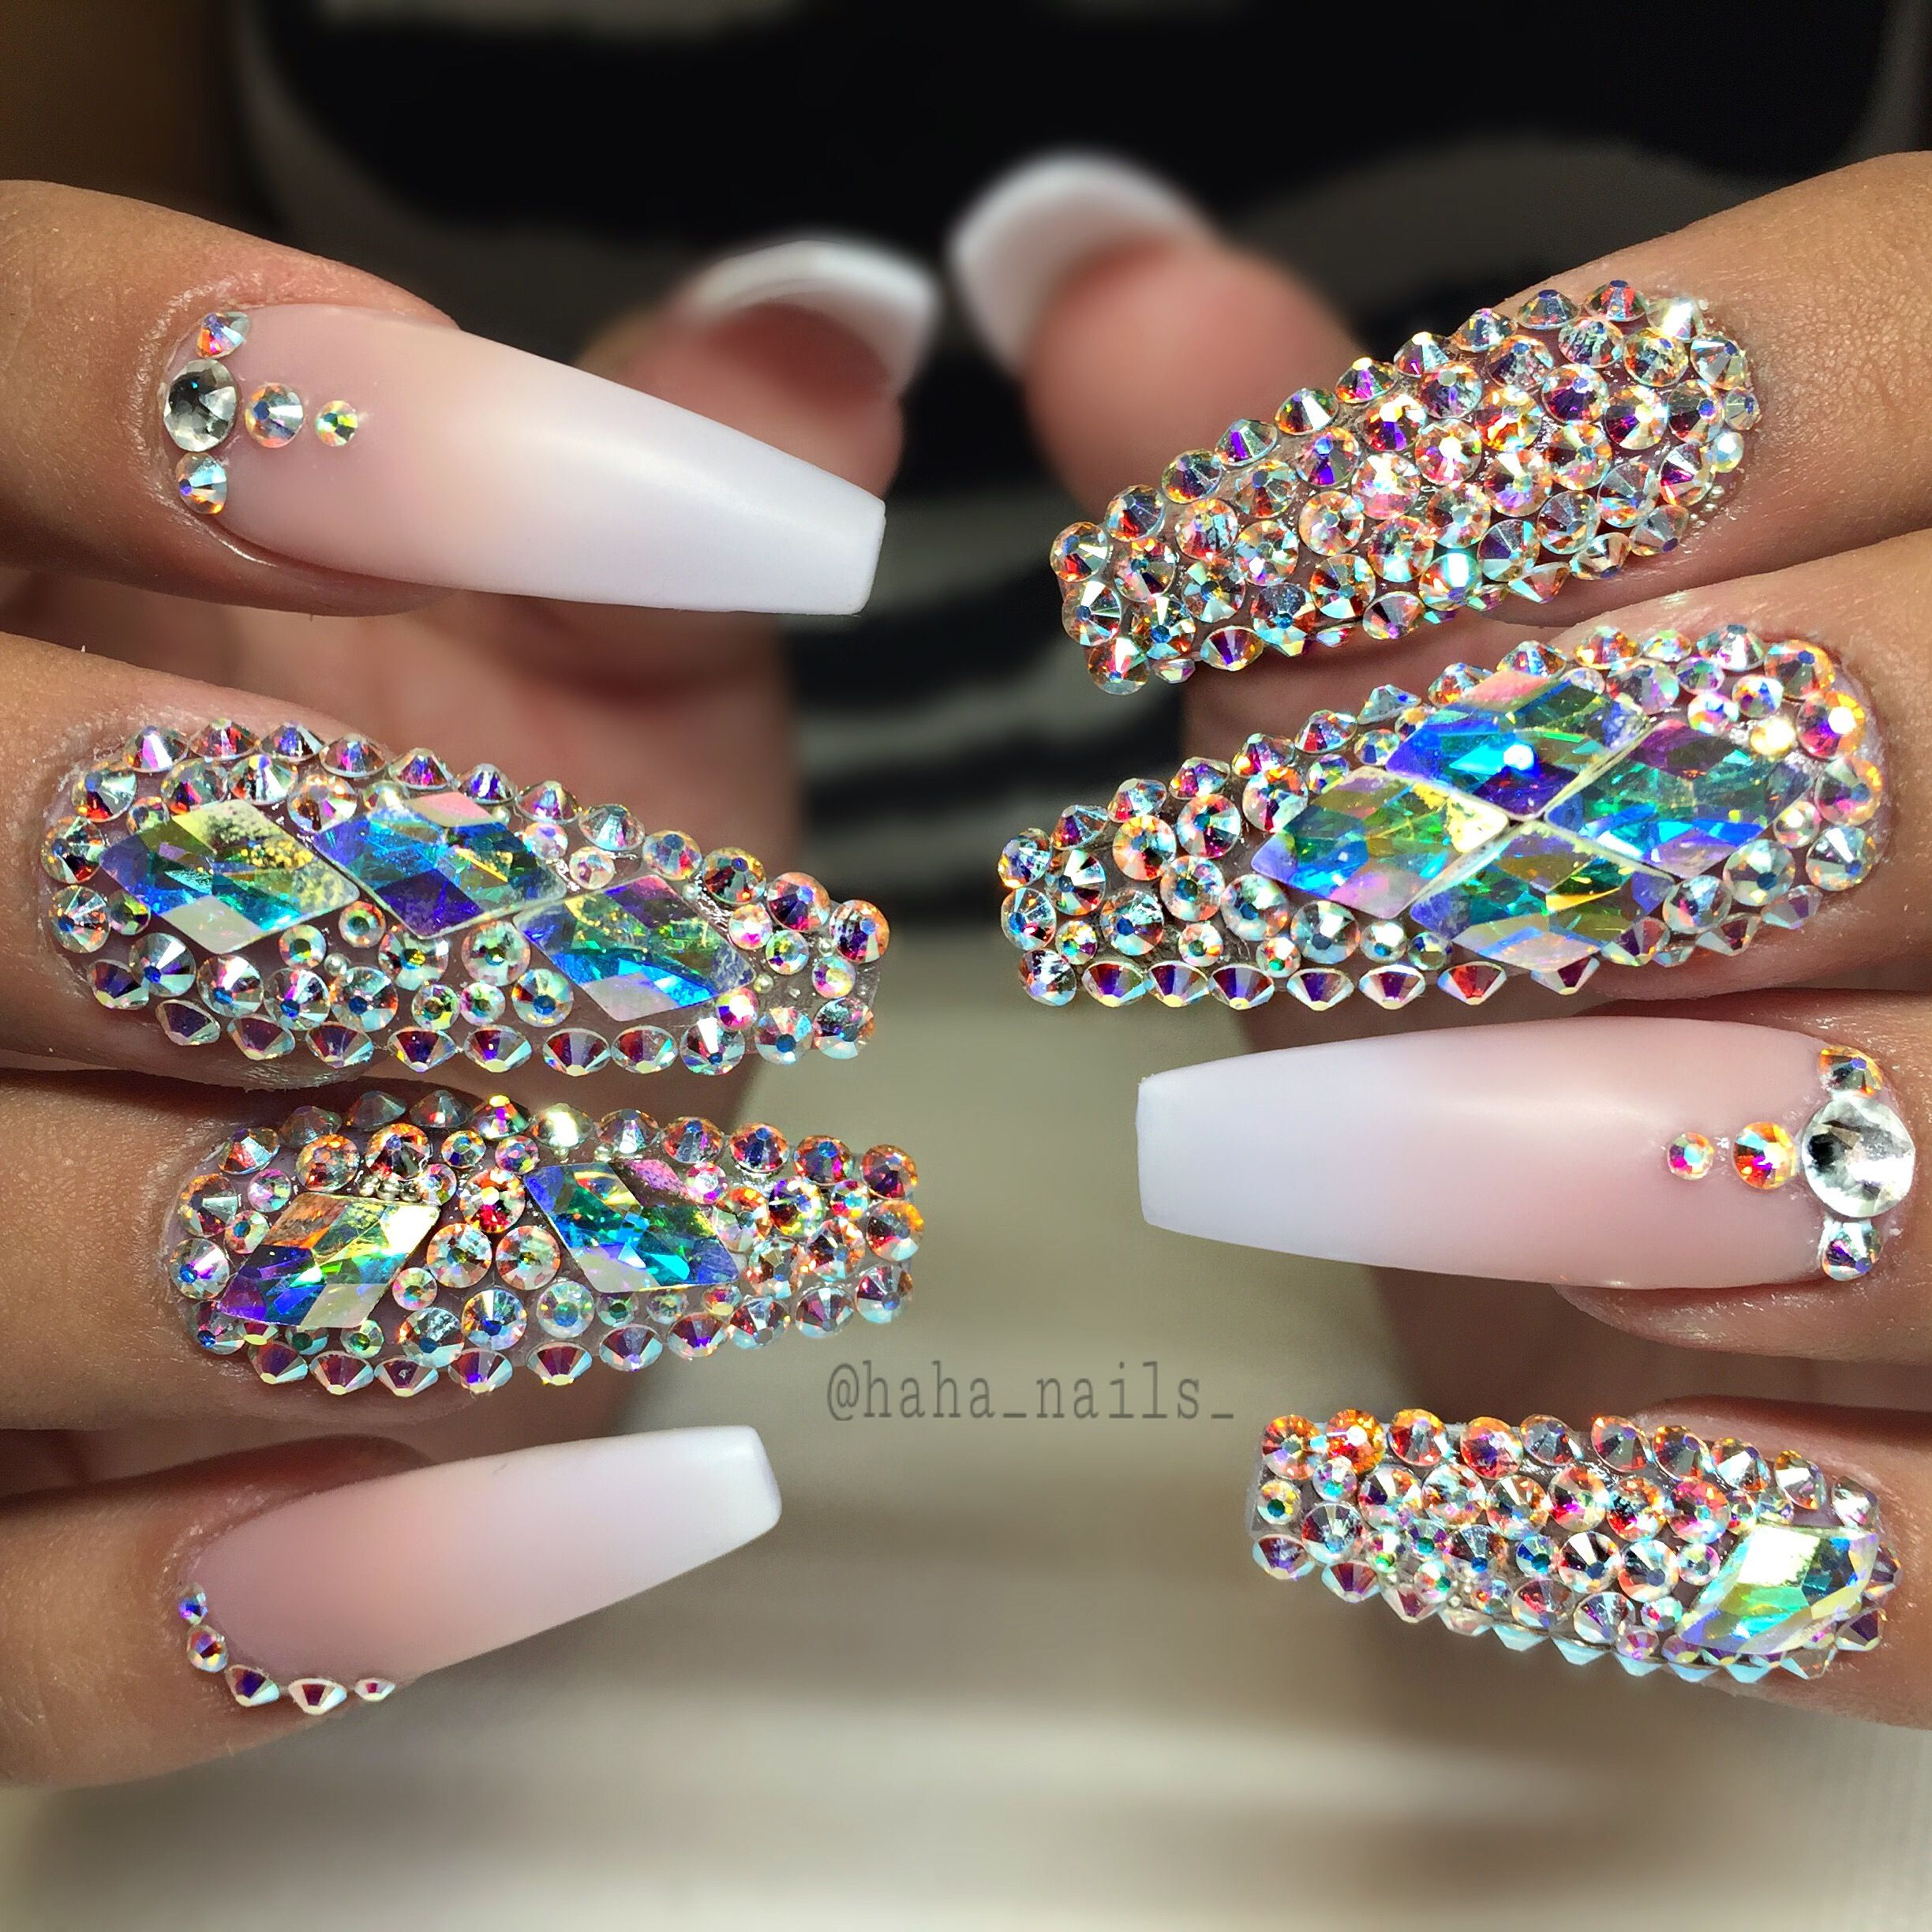 Pin von Hailey Craner auf makeup hair nails | Pinterest